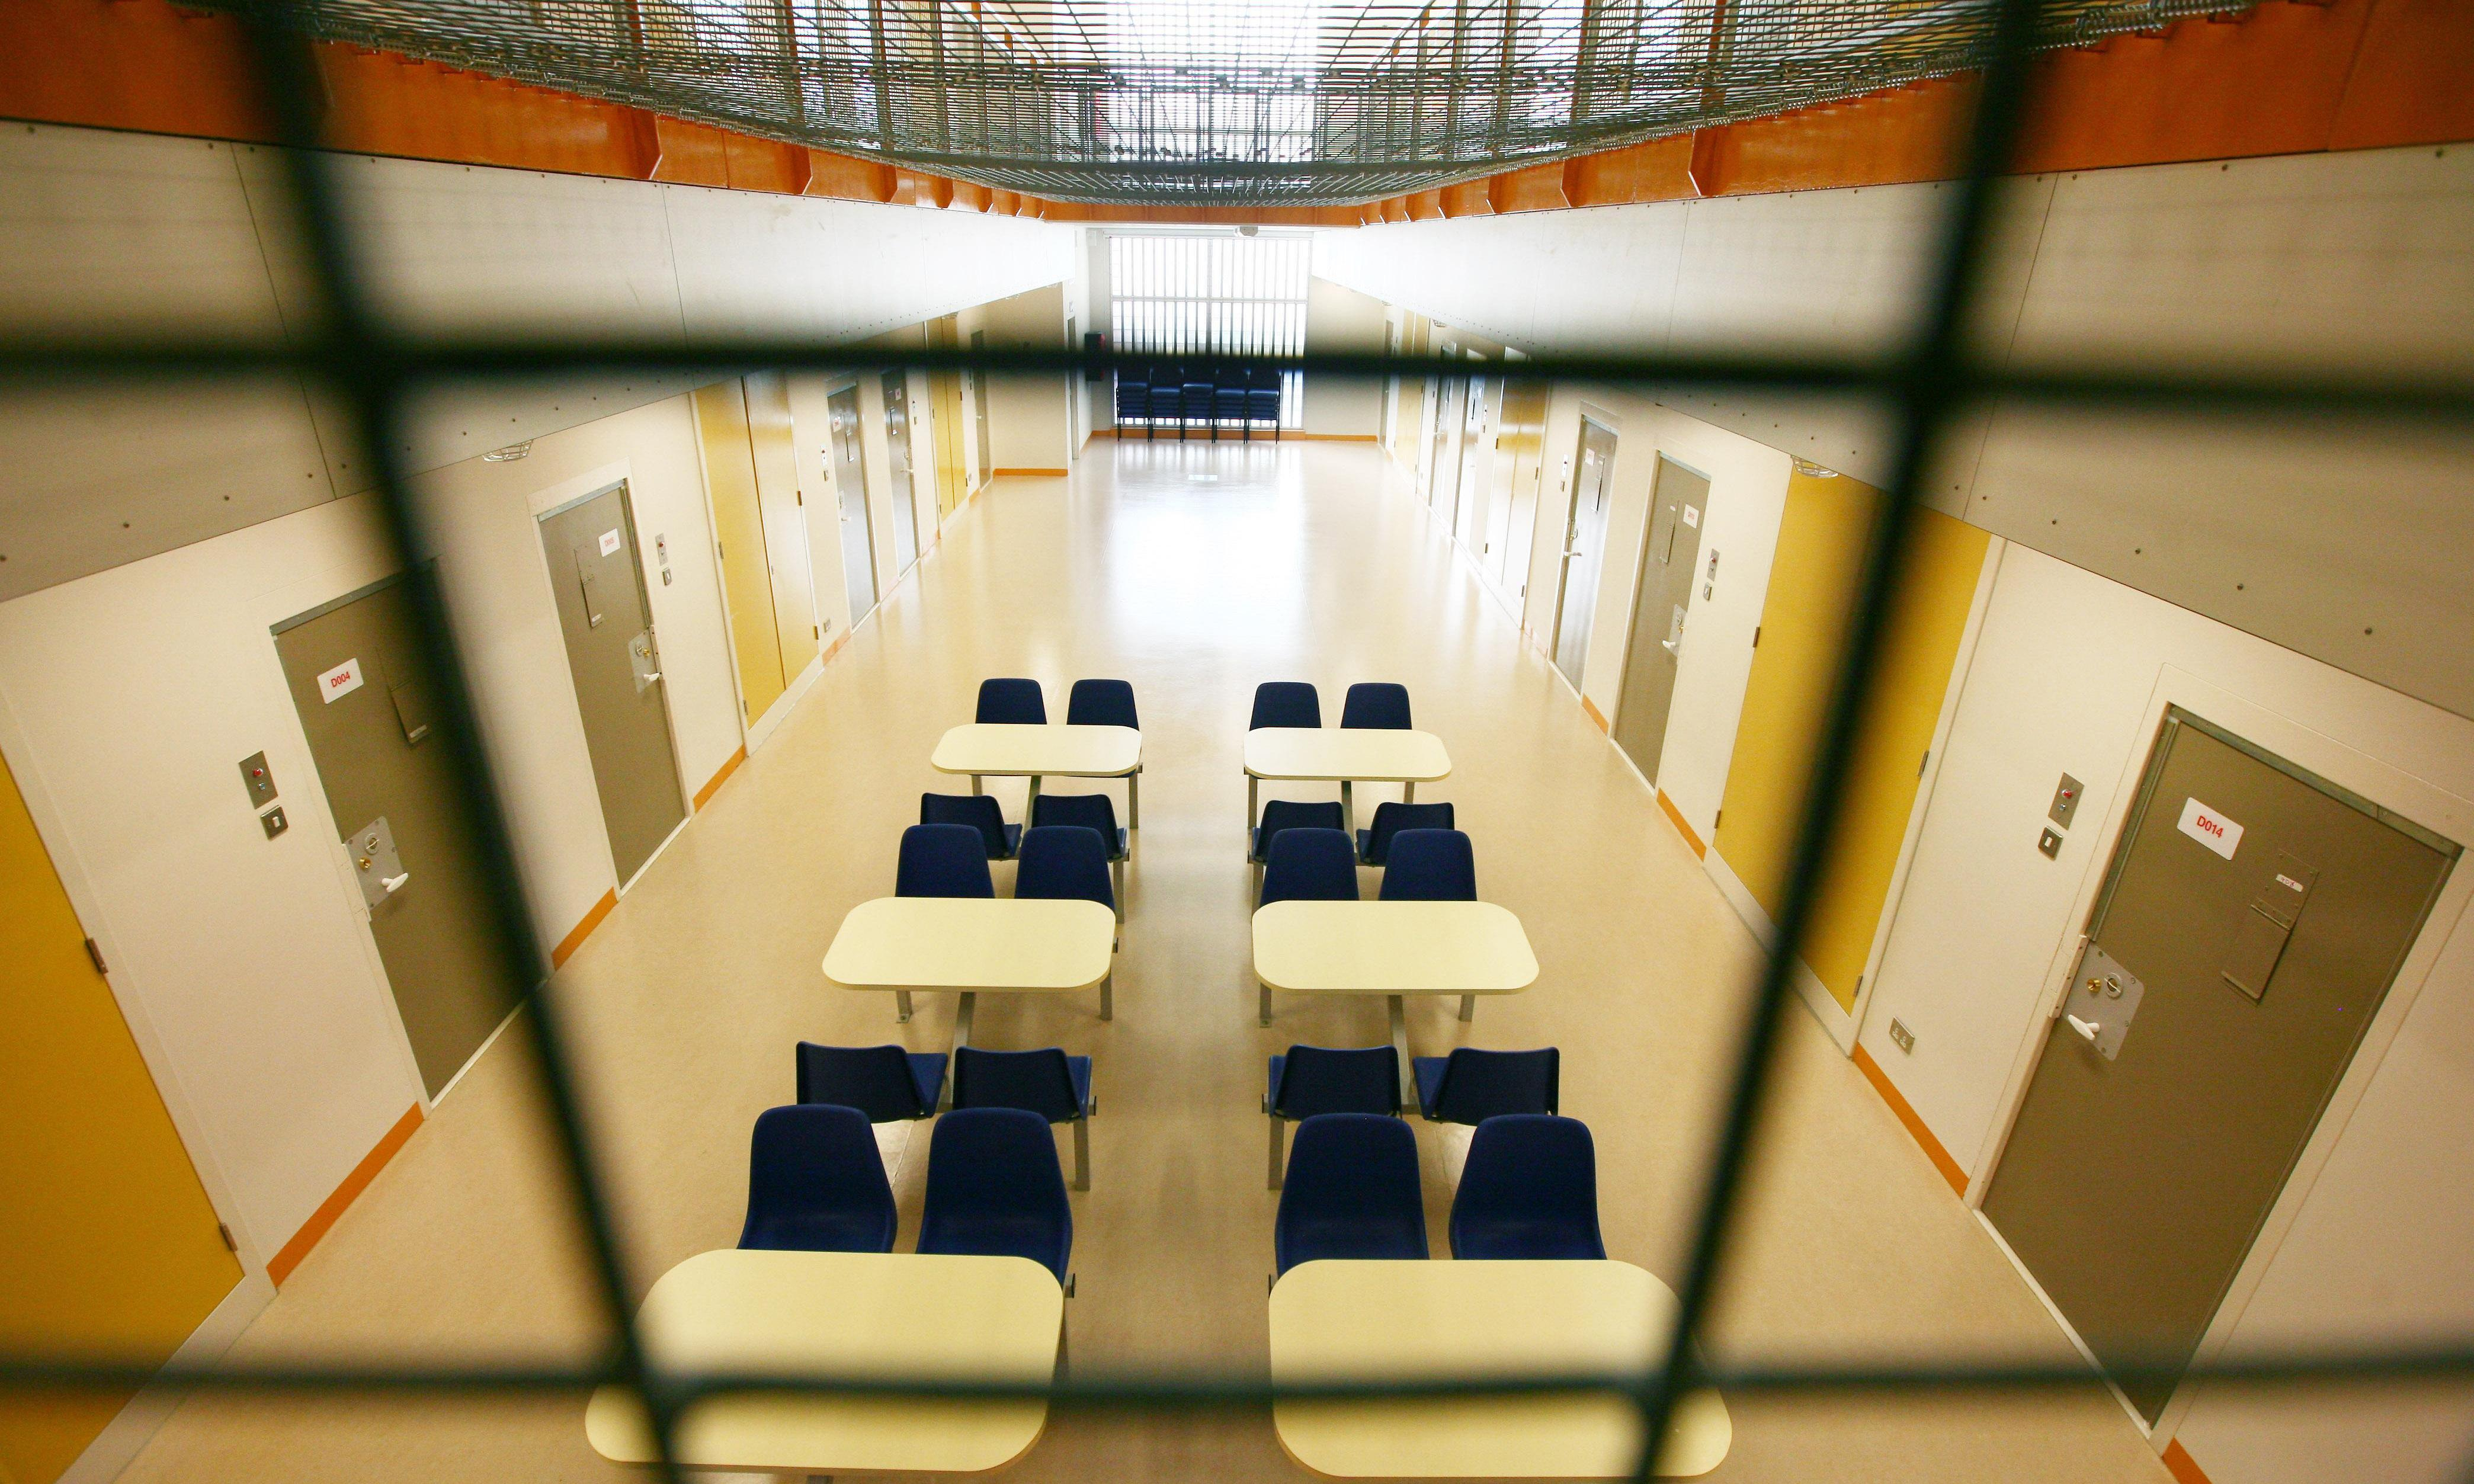 Judge orders public inquiry into abuse claims at immigration removal centre